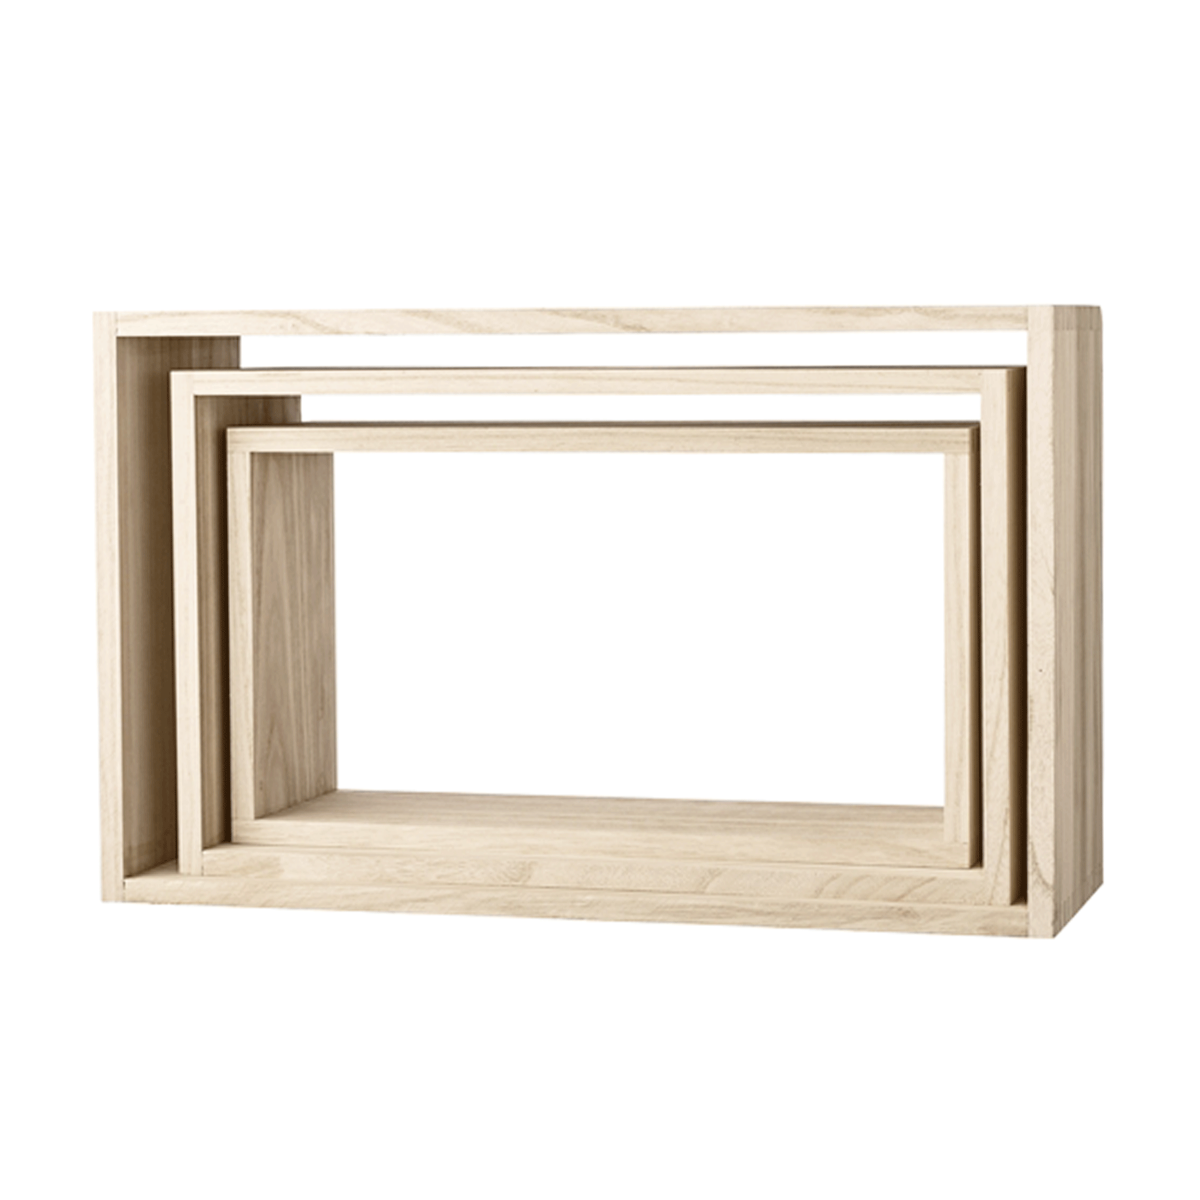 Etag re murale en bois naturel rectangulaire for Etagere niche murale